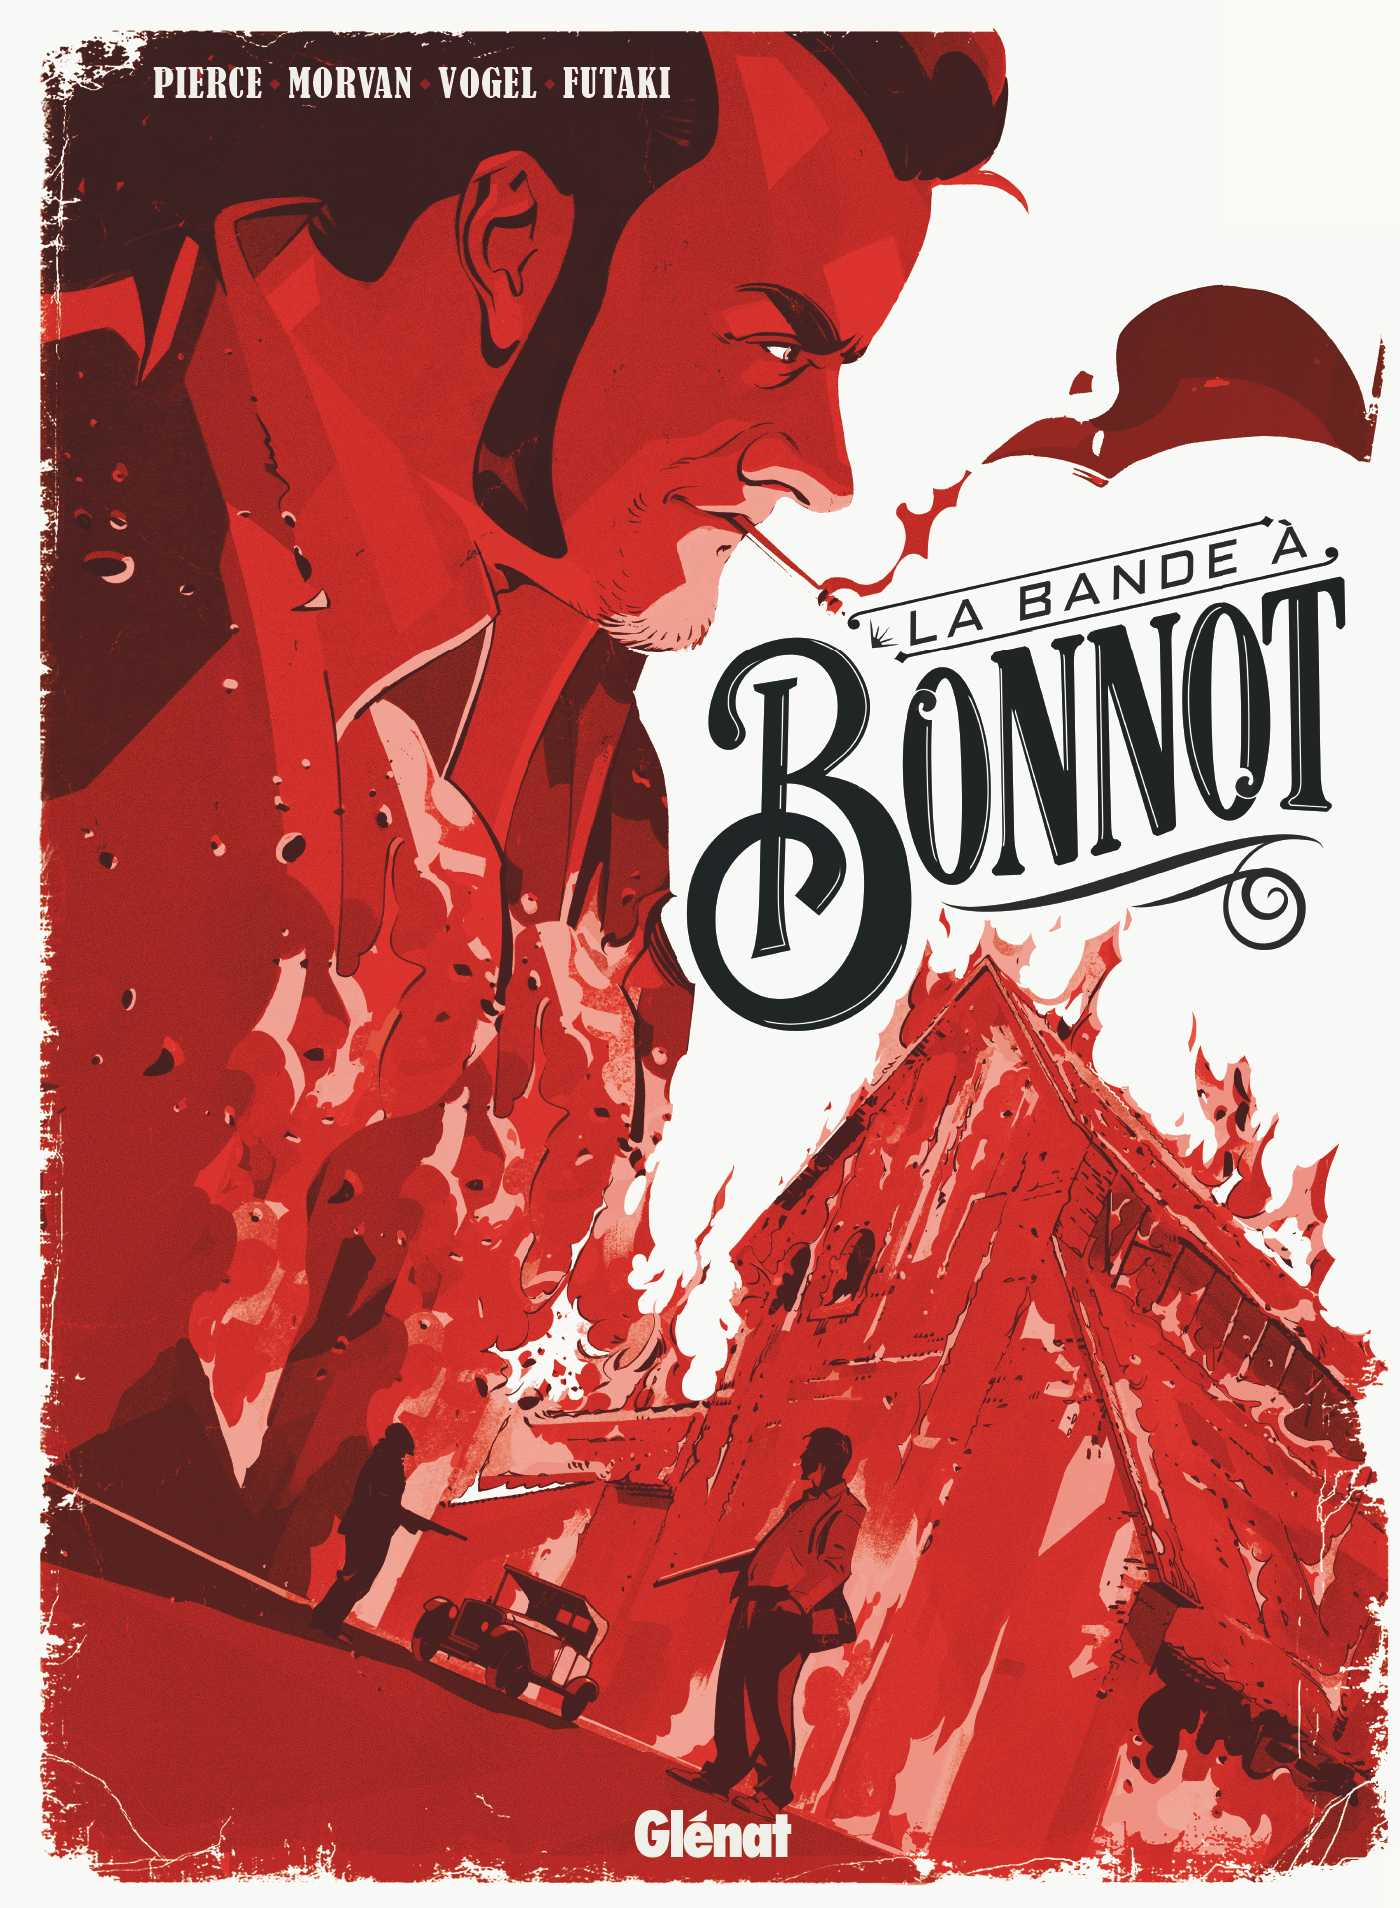 La Bande à Bonnot, anarchiste ou malfrat ?